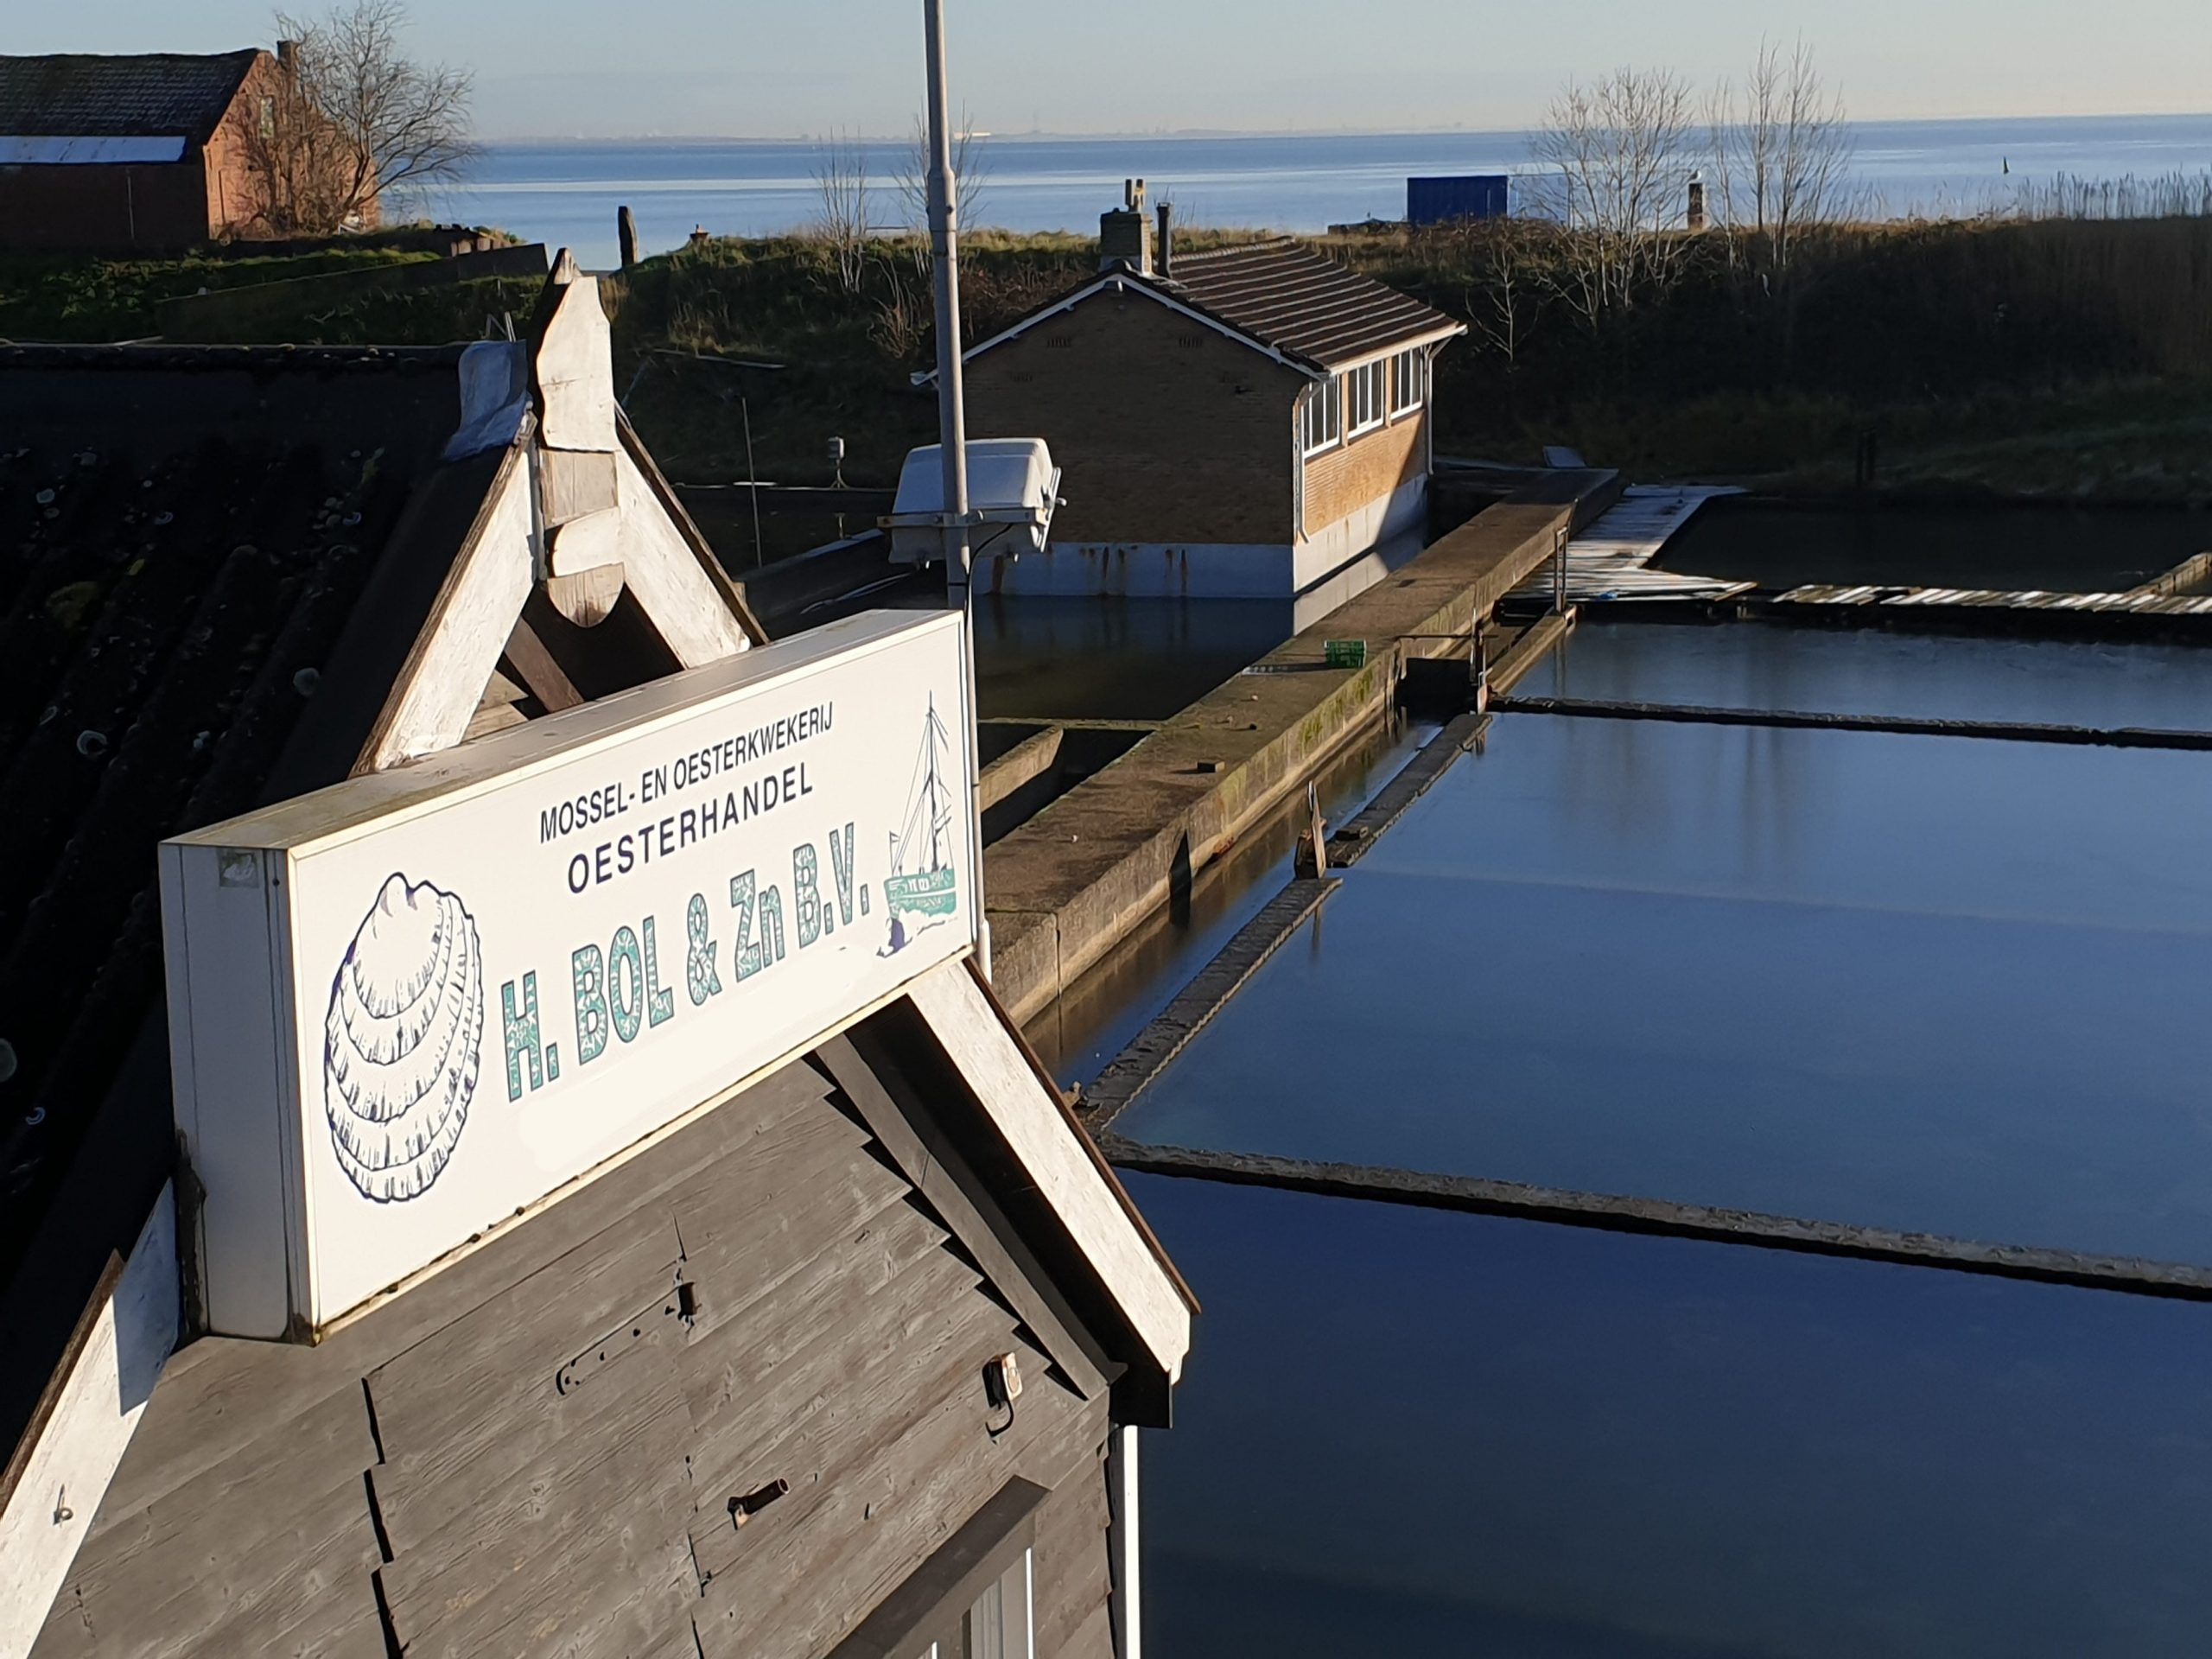 H.Bol & Zn. B.V. Oesterhandel is the family oyster farming company. It's located in Yerseke, the Netherlands.